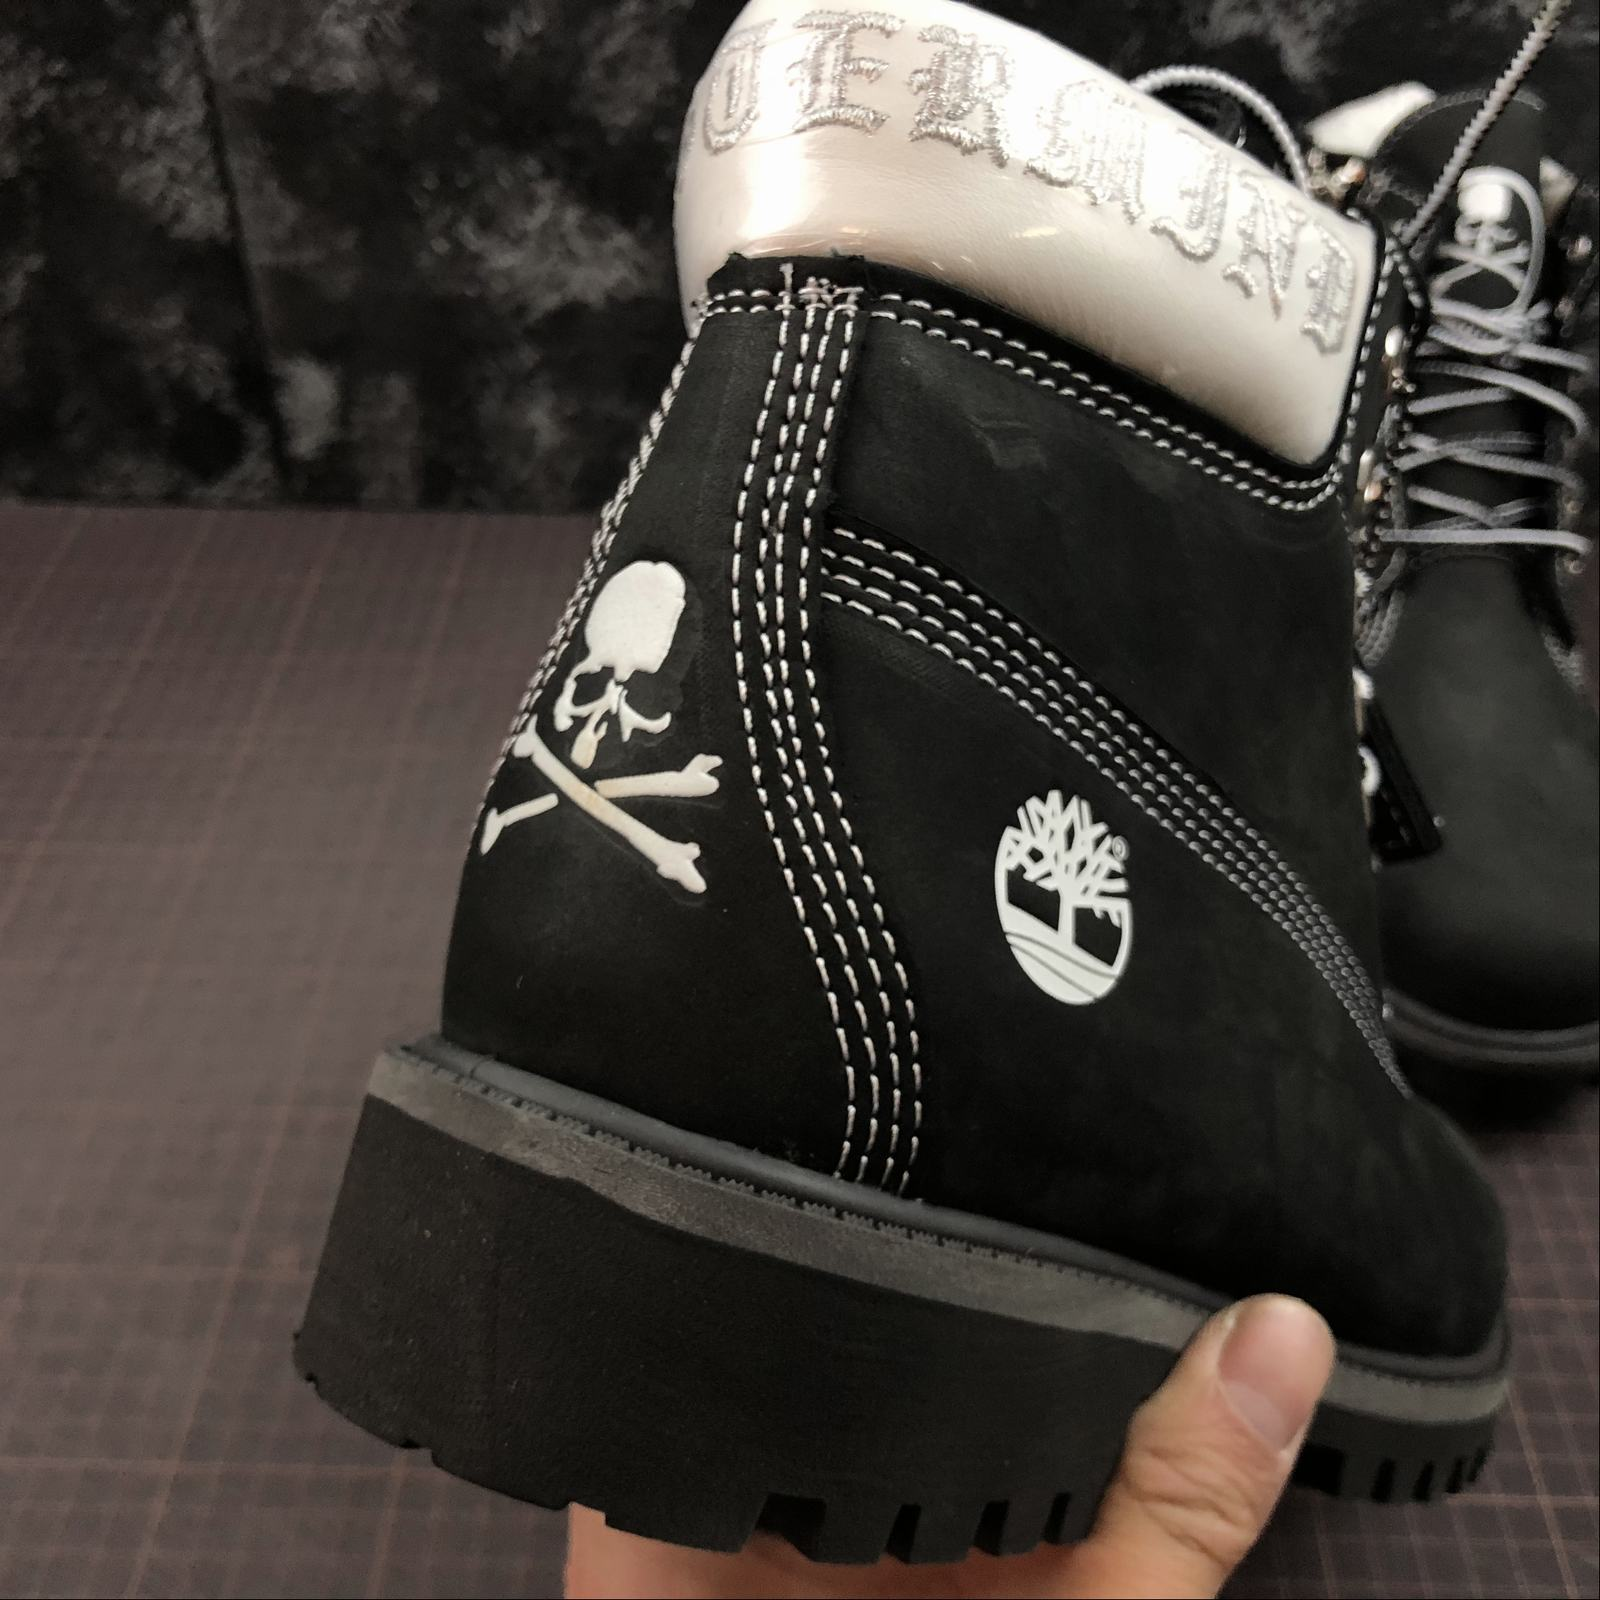 Зимние мужские ботинки Timberland x Mastermind Japan 5-Inch Zip Waterproof Boots Black - фото №9